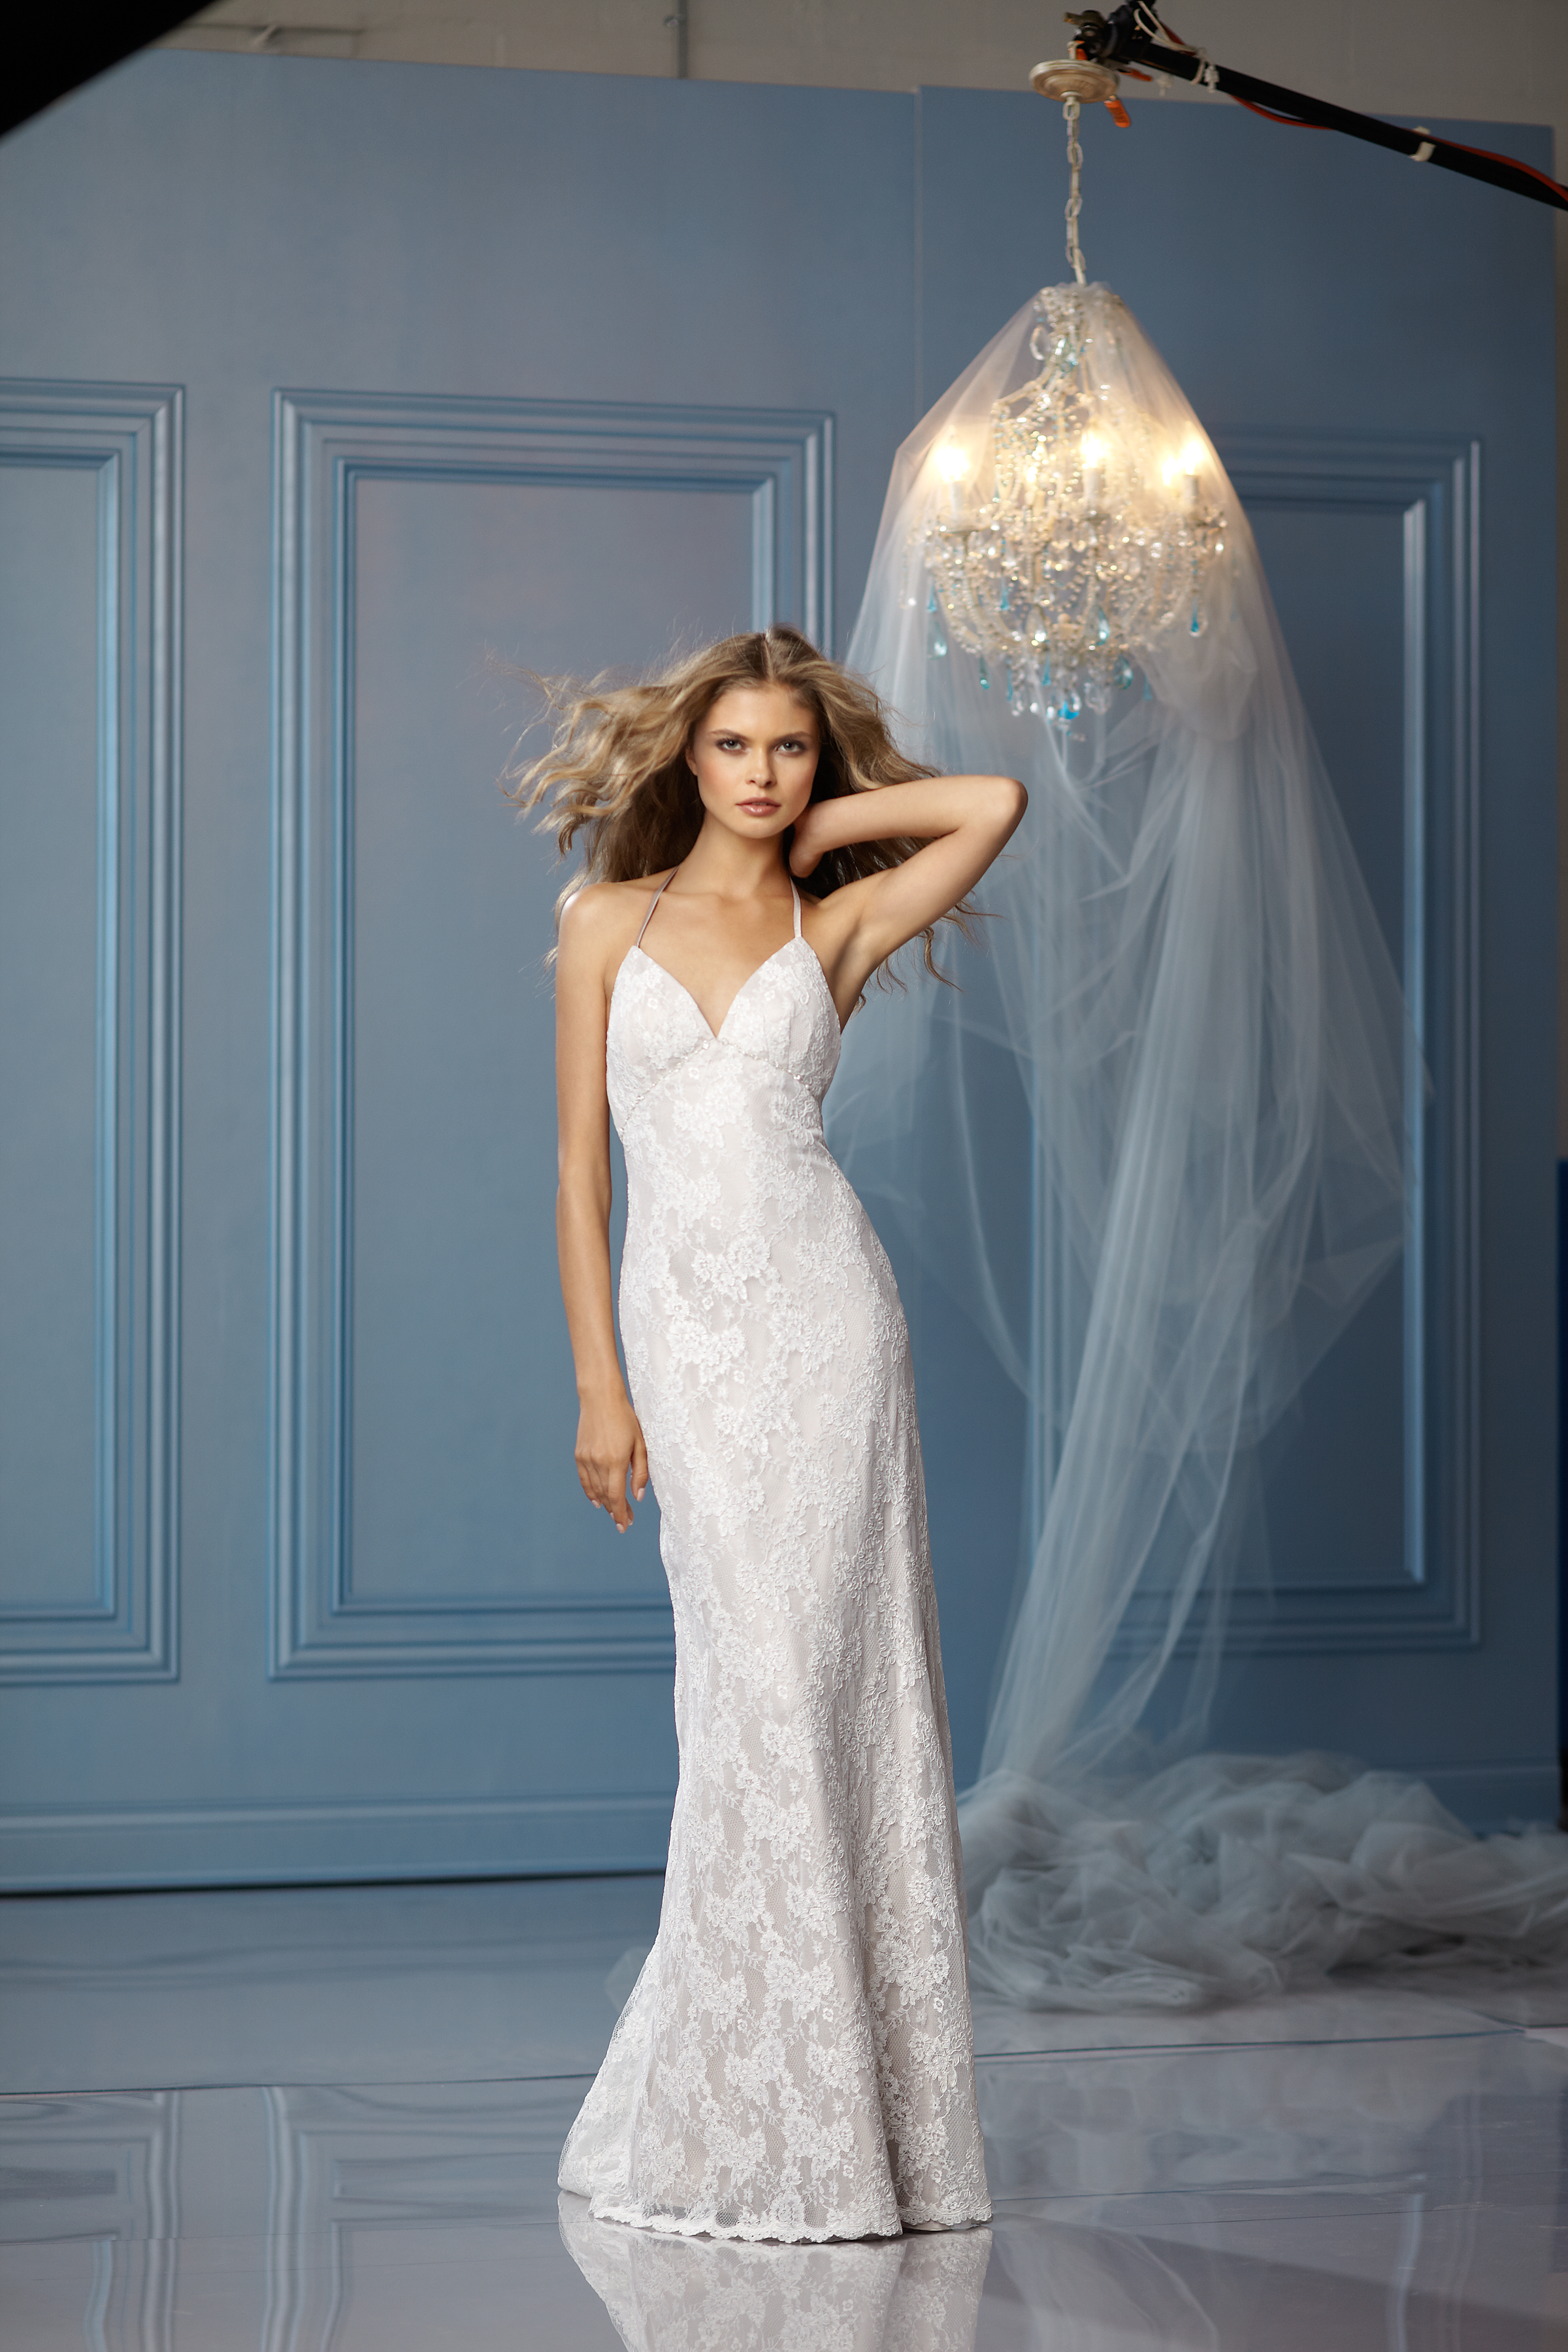 Mermaid Wedding Dresses, Lace Wedding Dresses, Beach Wedding Dresses, Fashion, white, ivory, Beach, Lace, Halter, V-neck, V-neck Wedding Dresses, Floor, Wedding dress, Natural, Informal, Mermaid/Trumpet, Fit-n-Flare, halter wedding dresses, trumpet wedding dresses, Wtoo Brides, Informal Wedding Dresses, Floor Wedding Dresses